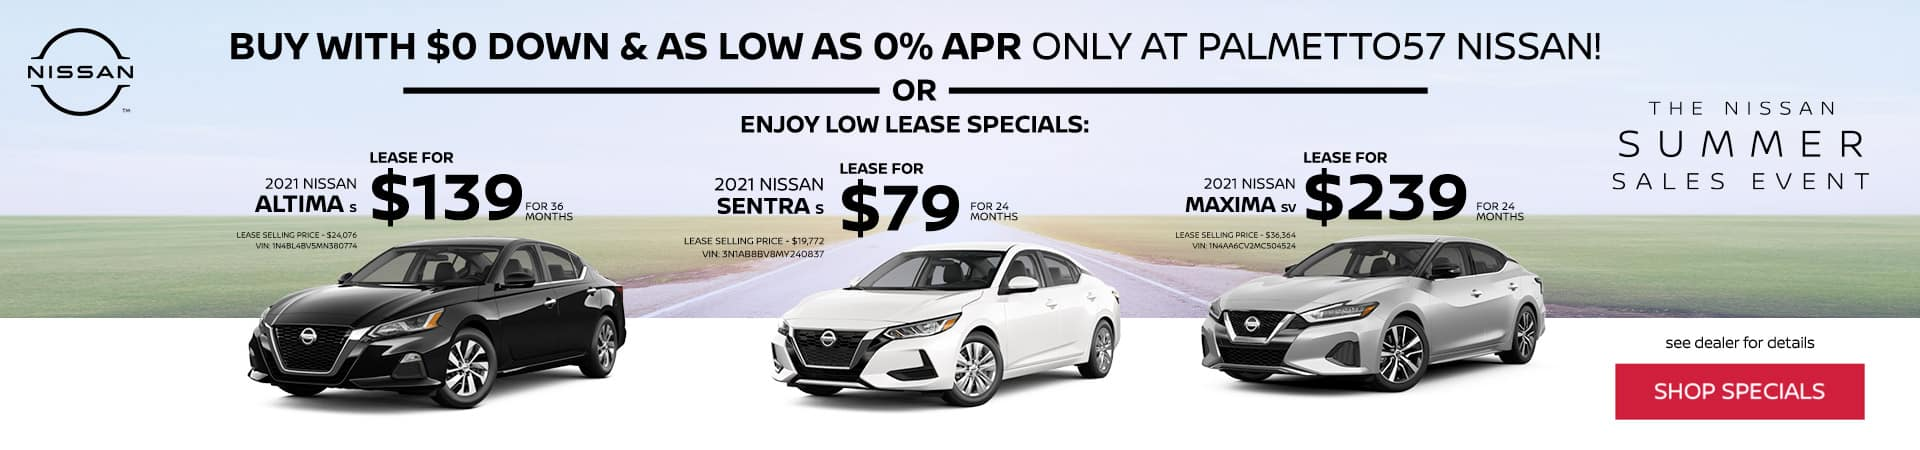 Lease Specials for Nissan Altima, Sentra, and Maxima